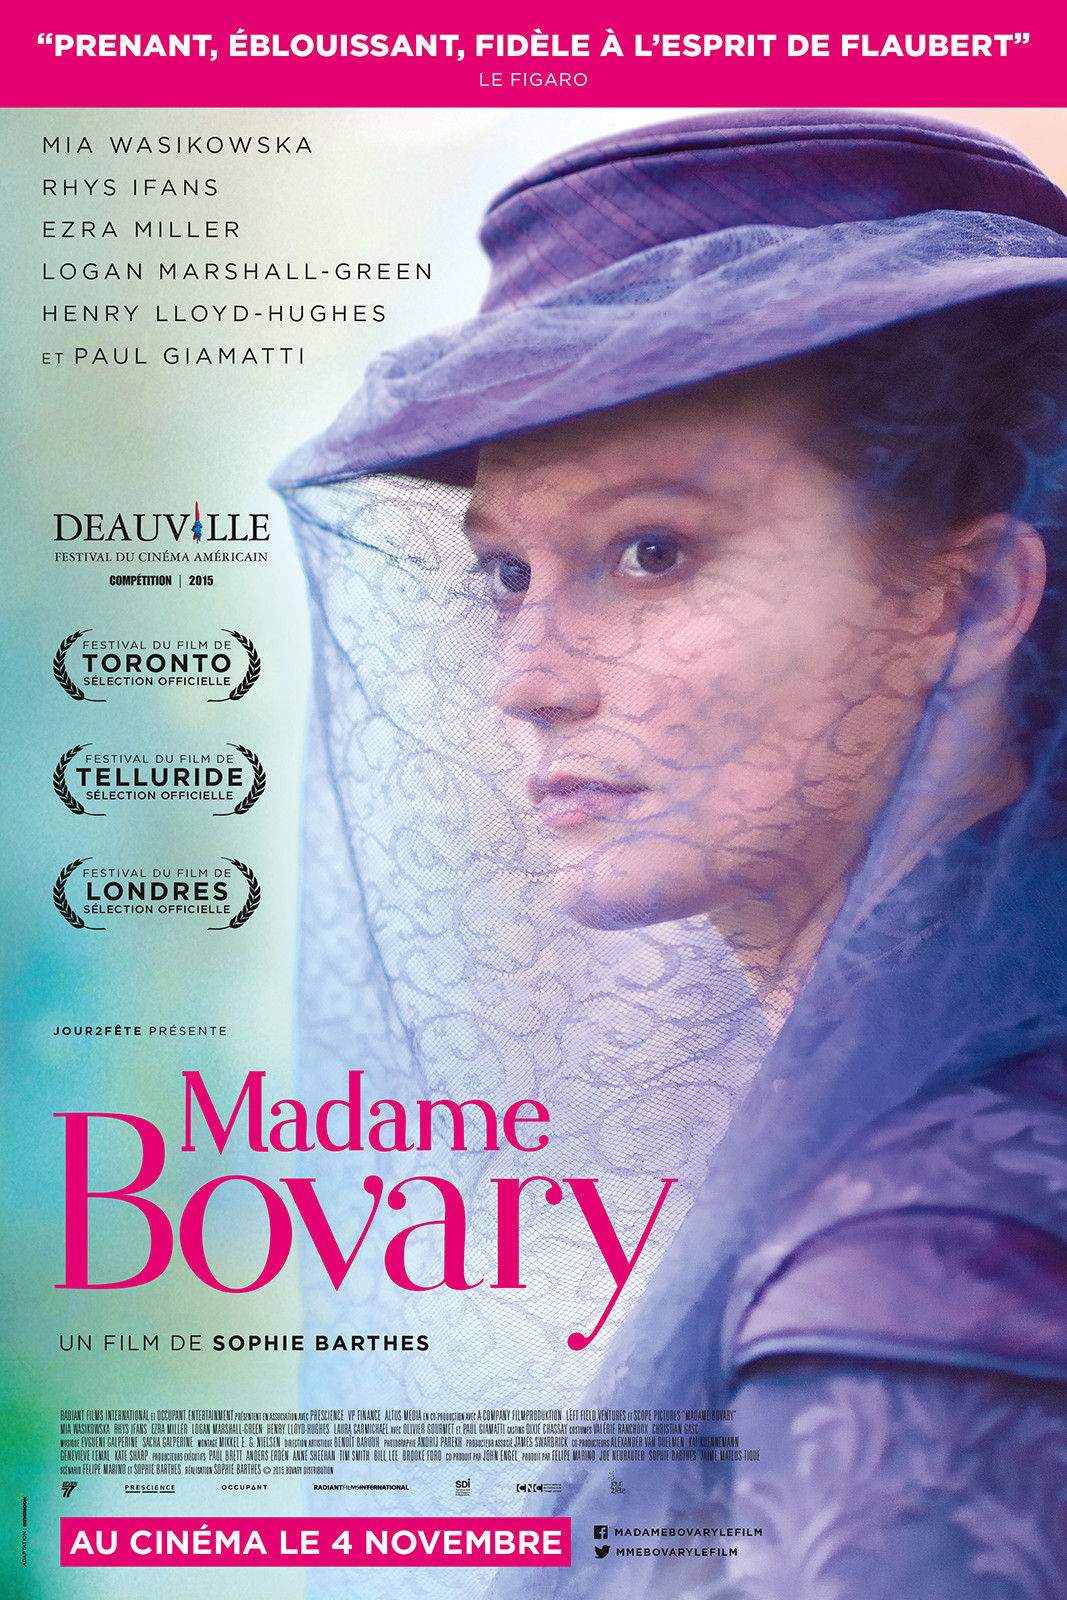 Rencontre charles emma bovary